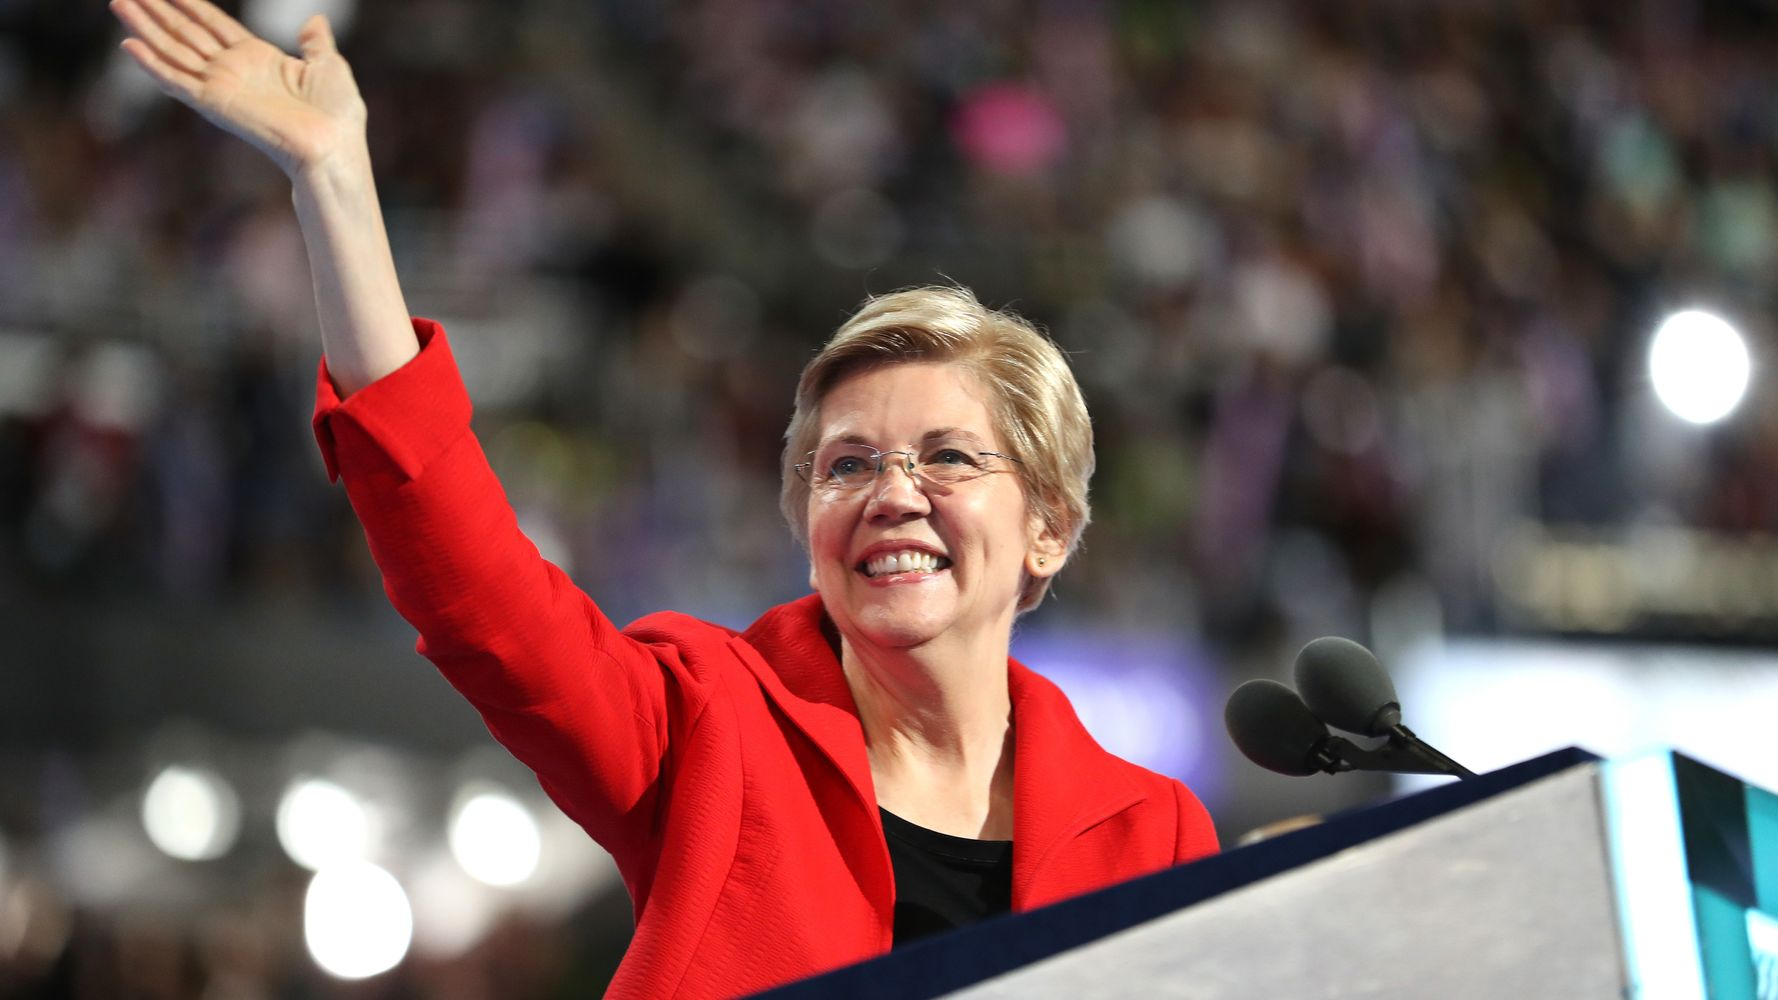 Elizabeth Warren Proposes Wiping Out Almost Everyone's Student Debt